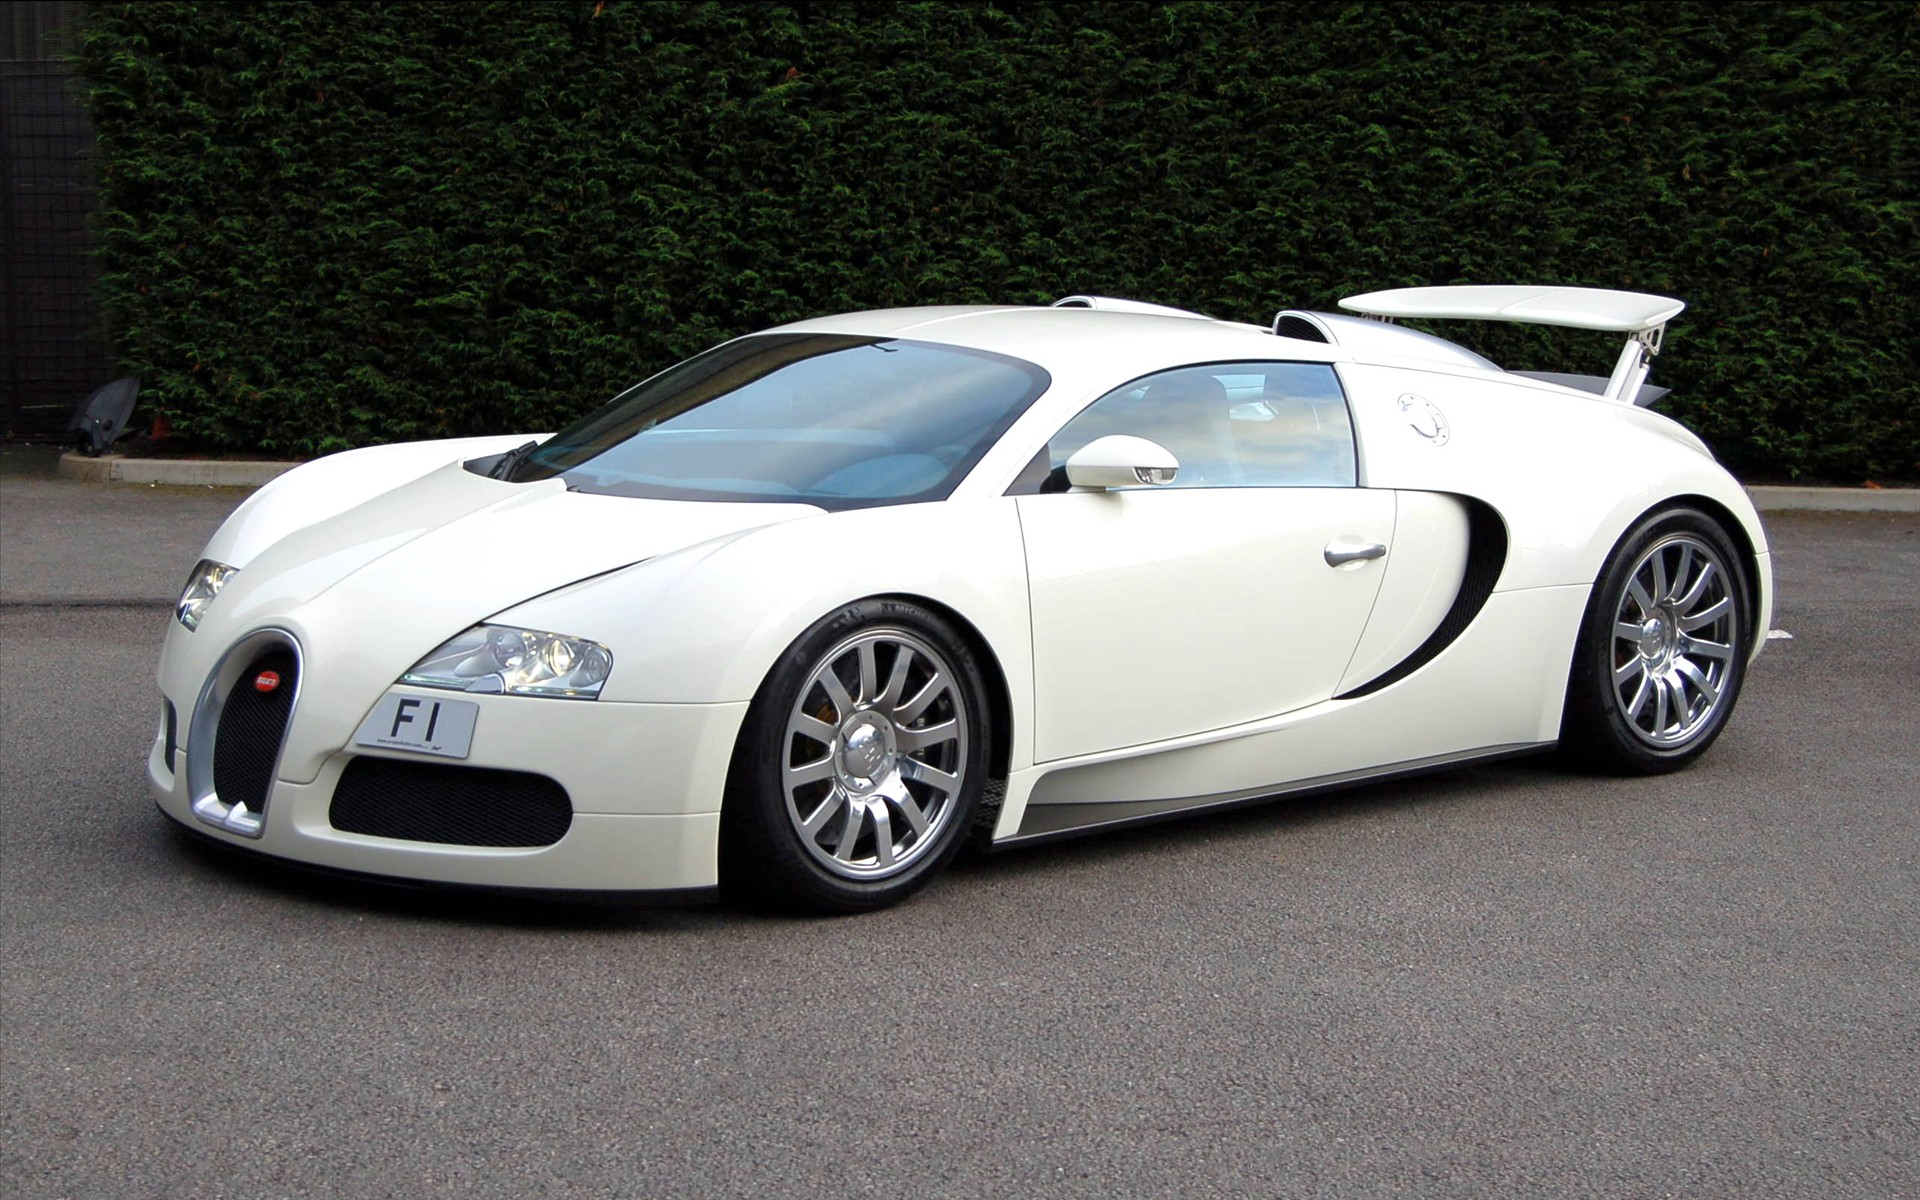 Bugatti Veyron Amazing Photo On Openiso Org Collection Of Cars